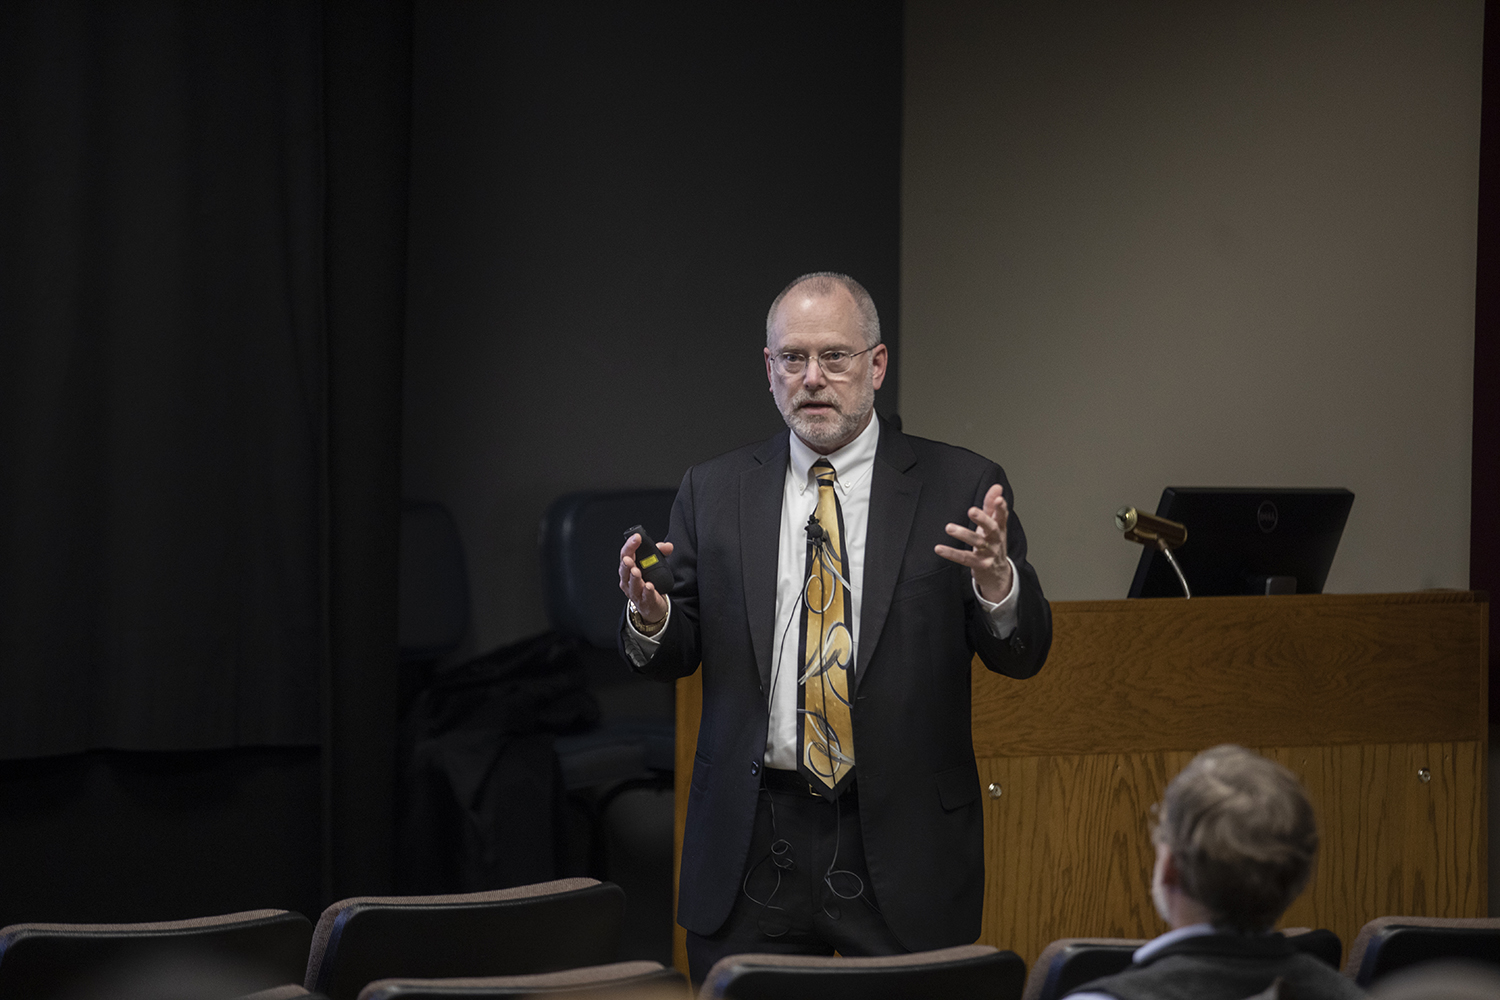 Dean Emeritus and Professor of Medicinal Chemistry and Molecular Pharmacology Craig Svensson speaks at the forum for the Vice President of Research on Thursday, February 21, 2019 at the IMU. Svensson is the third and final candidate for the Vice President position.